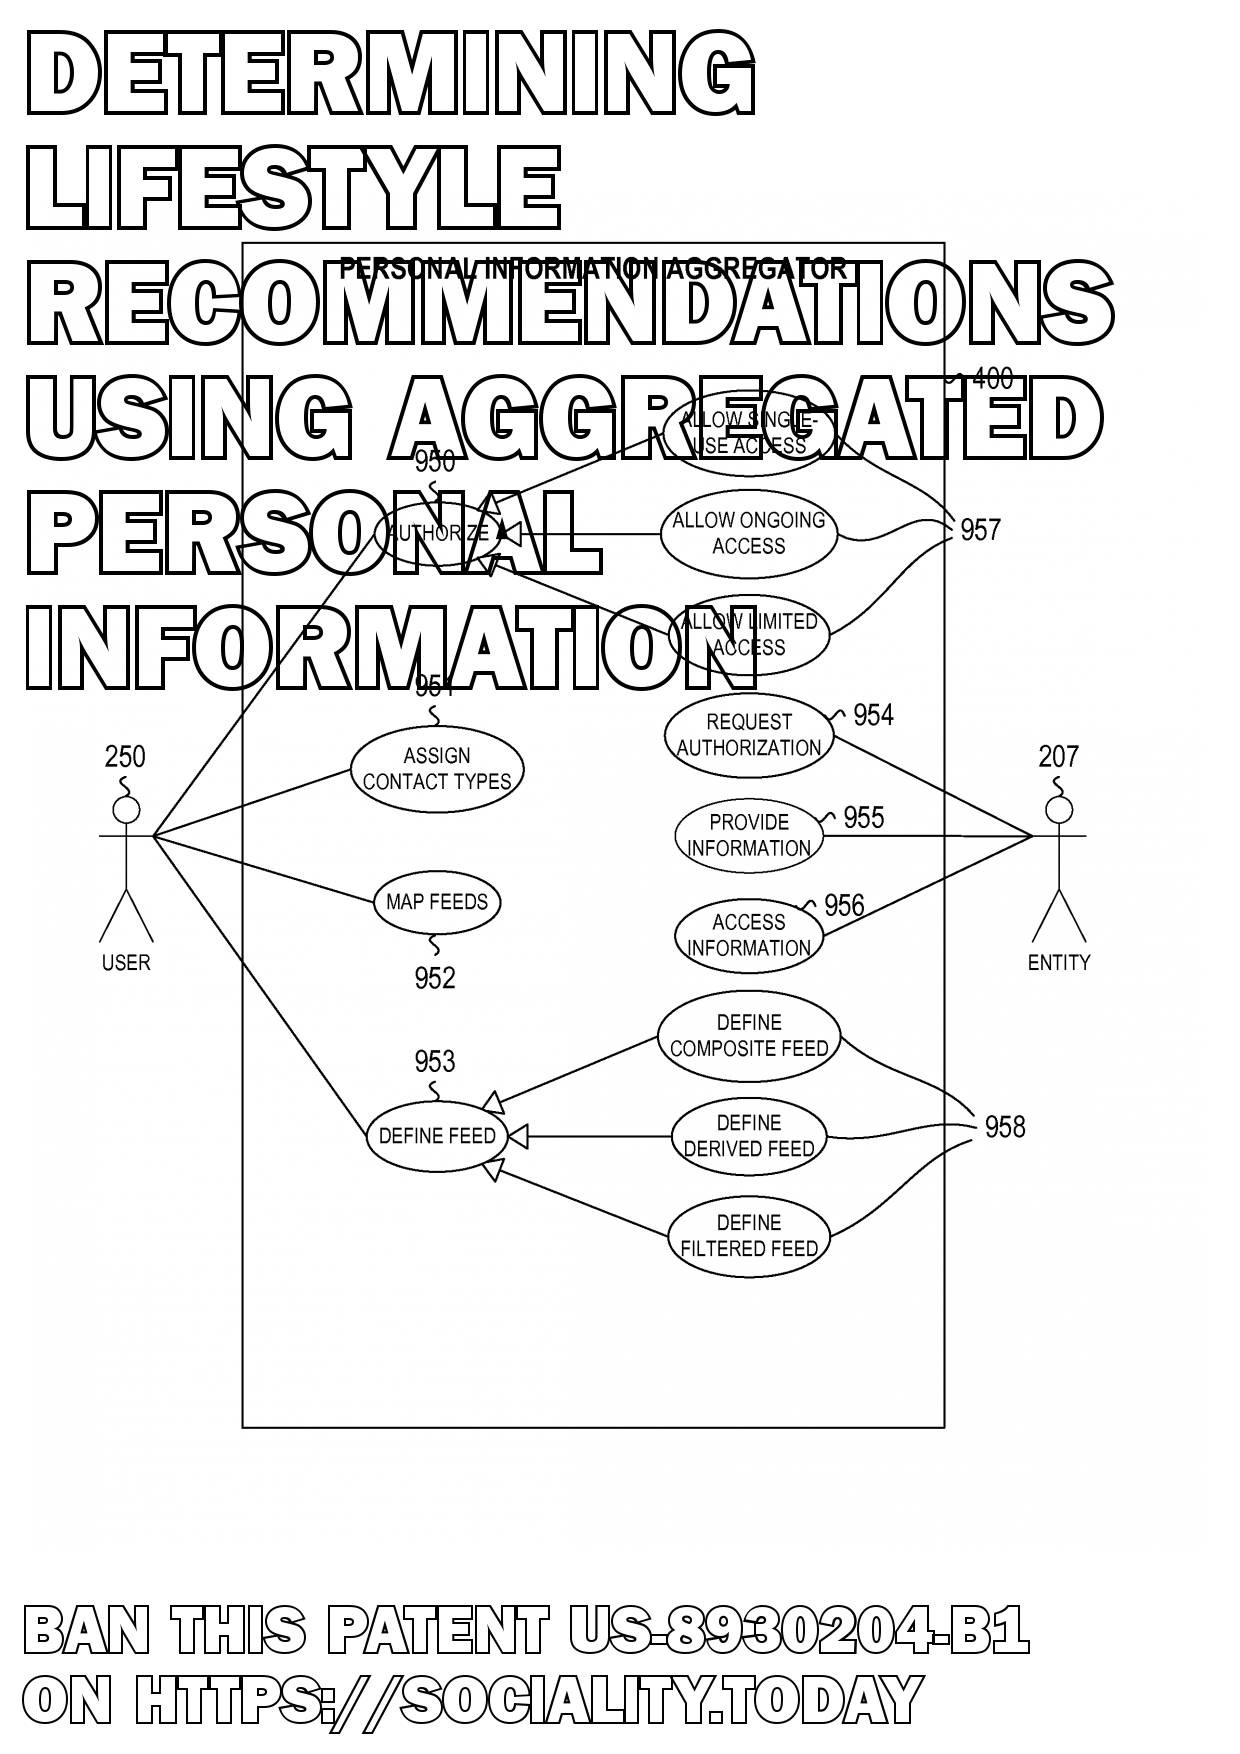 Determining lifestyle recommendations using aggregated personal information  - US-8930204-B1